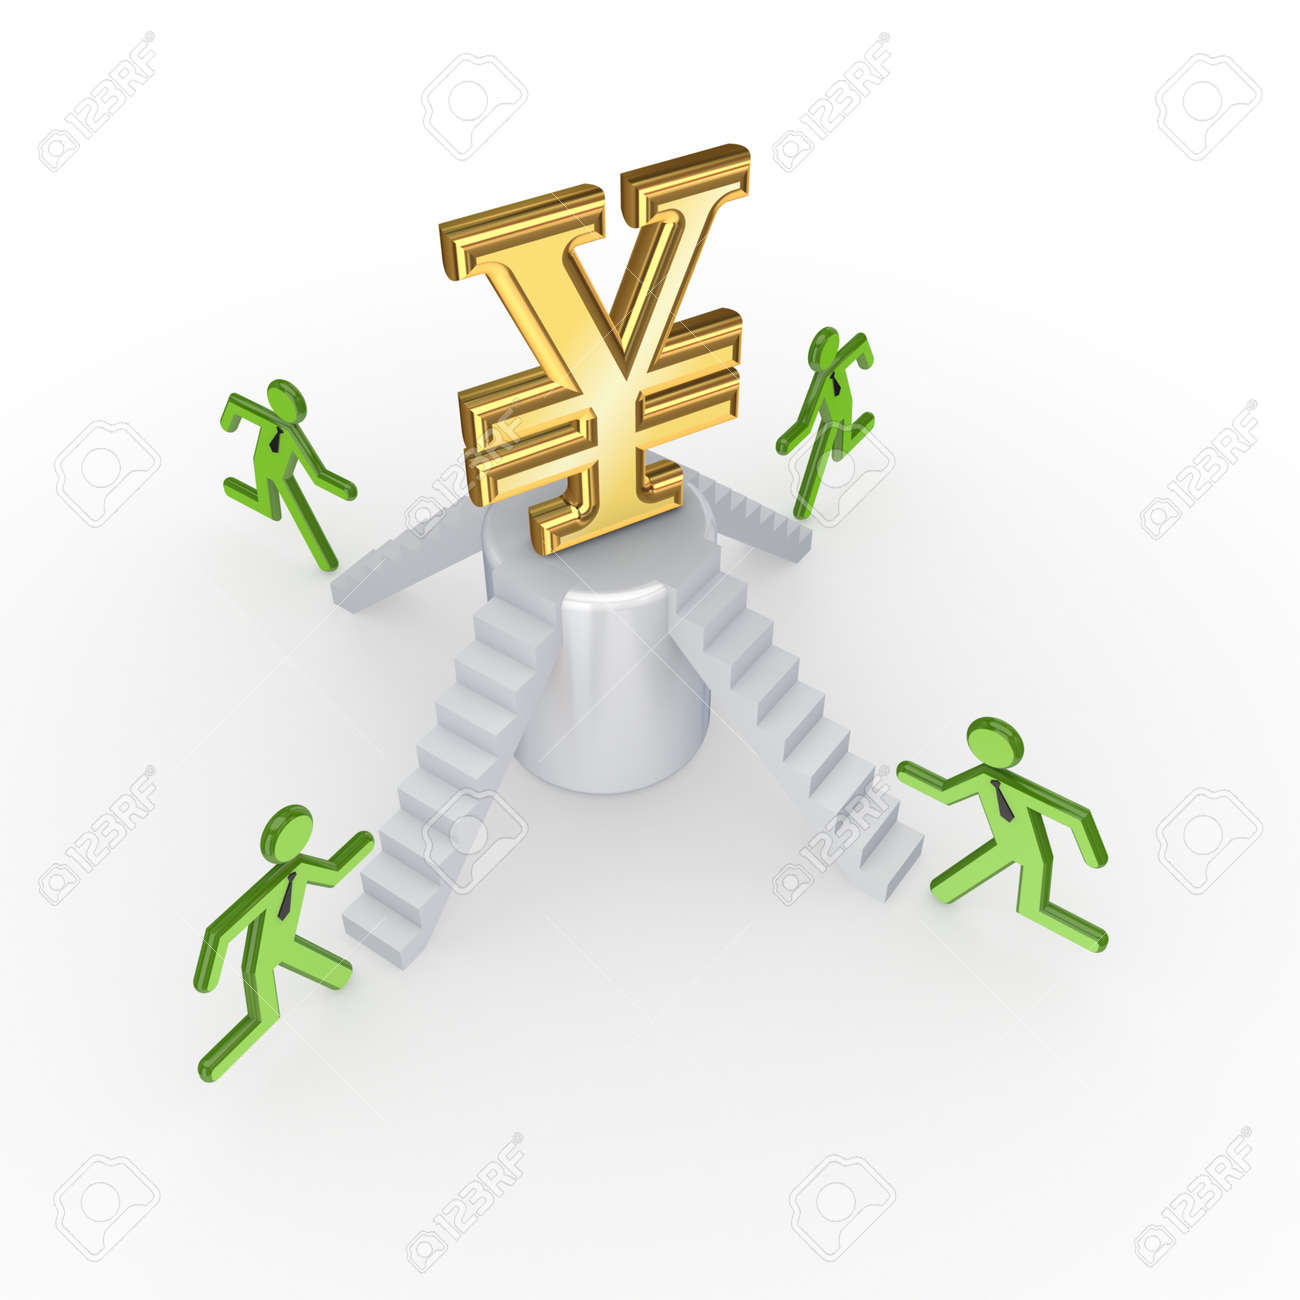 Small people running to a yen symbol Stock Photo - 17535385